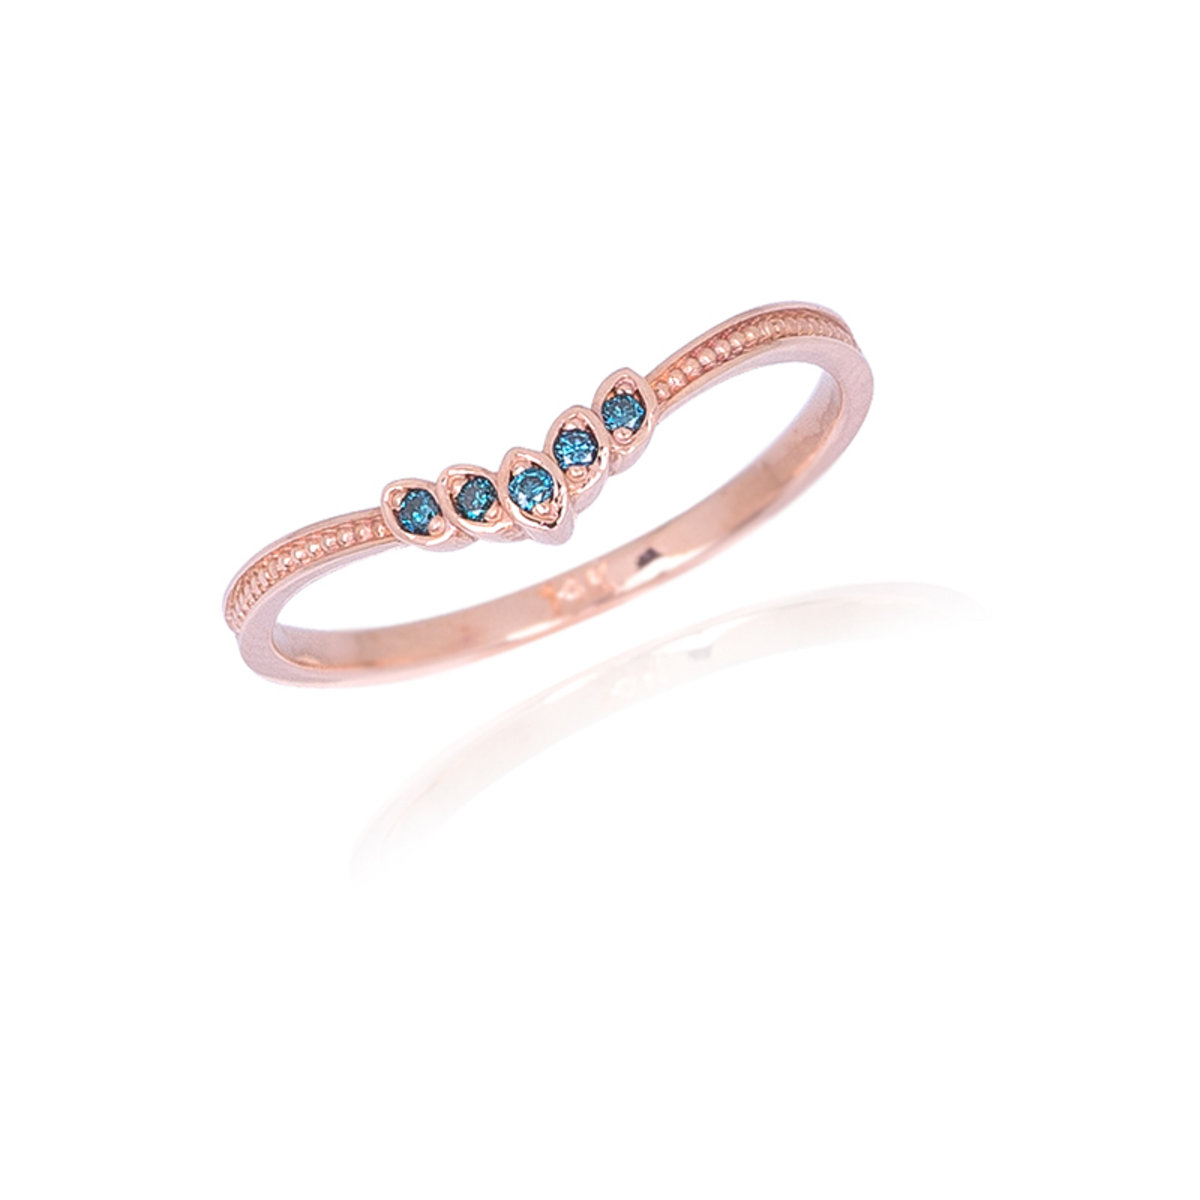 Womens Blue Diamond Ring Lodagold NhyWmw7